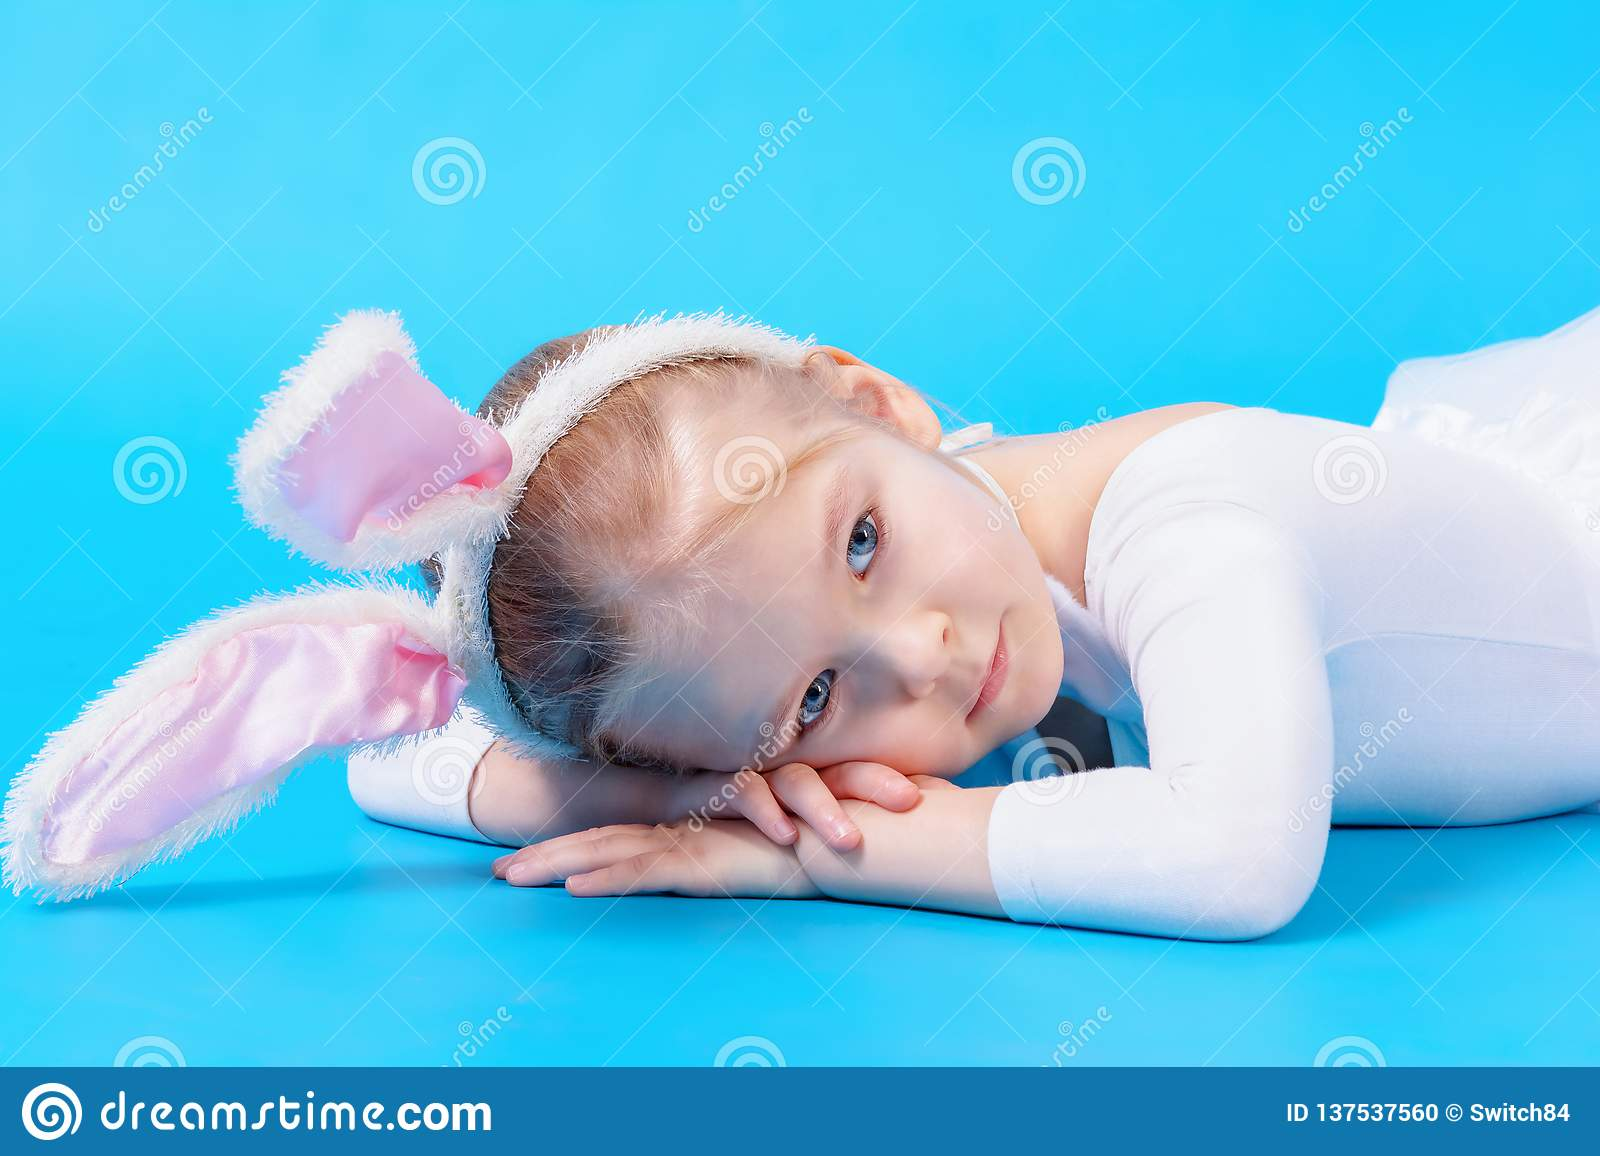 Little girl in a white rabbit costume on a blue background. The baby lies dreaming on the floor.